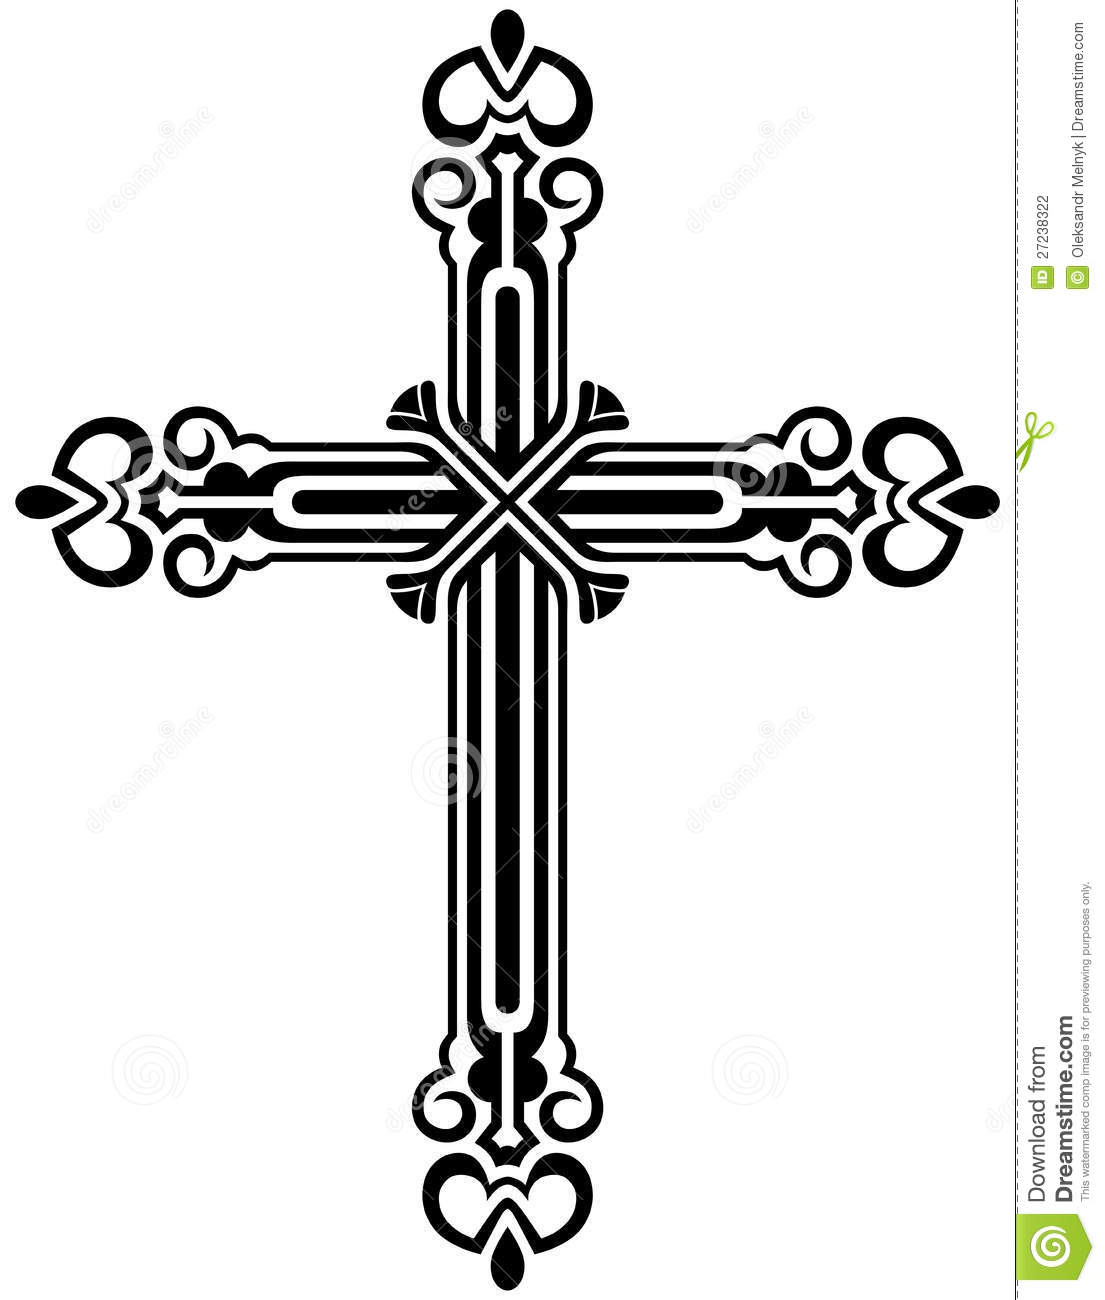 Catholic Cross Pictures | Clipart Panda - Free Clipart Images